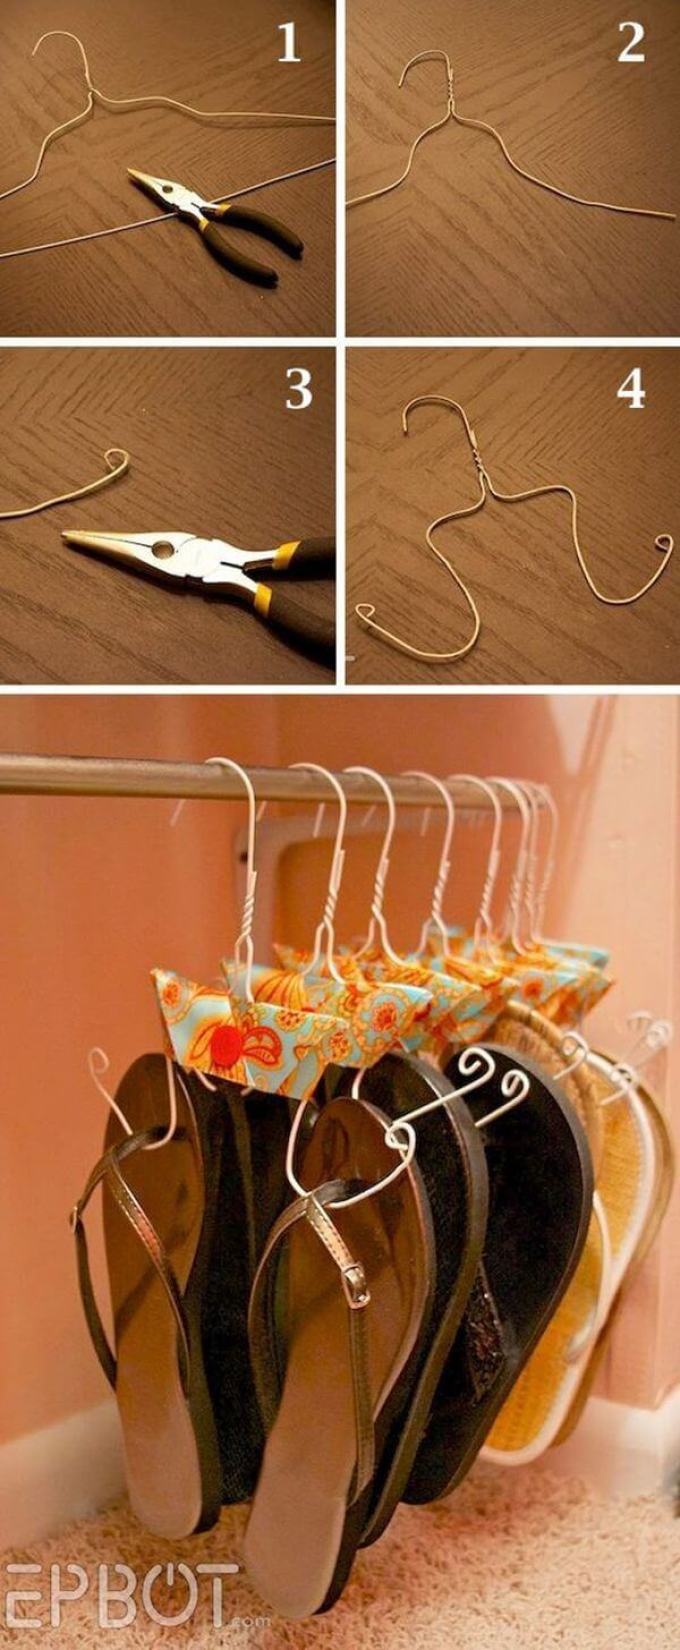 Storage Ideas for Small Spaces - Adorable Hanger Hack for Sandal Storage - Harpmagazine.com